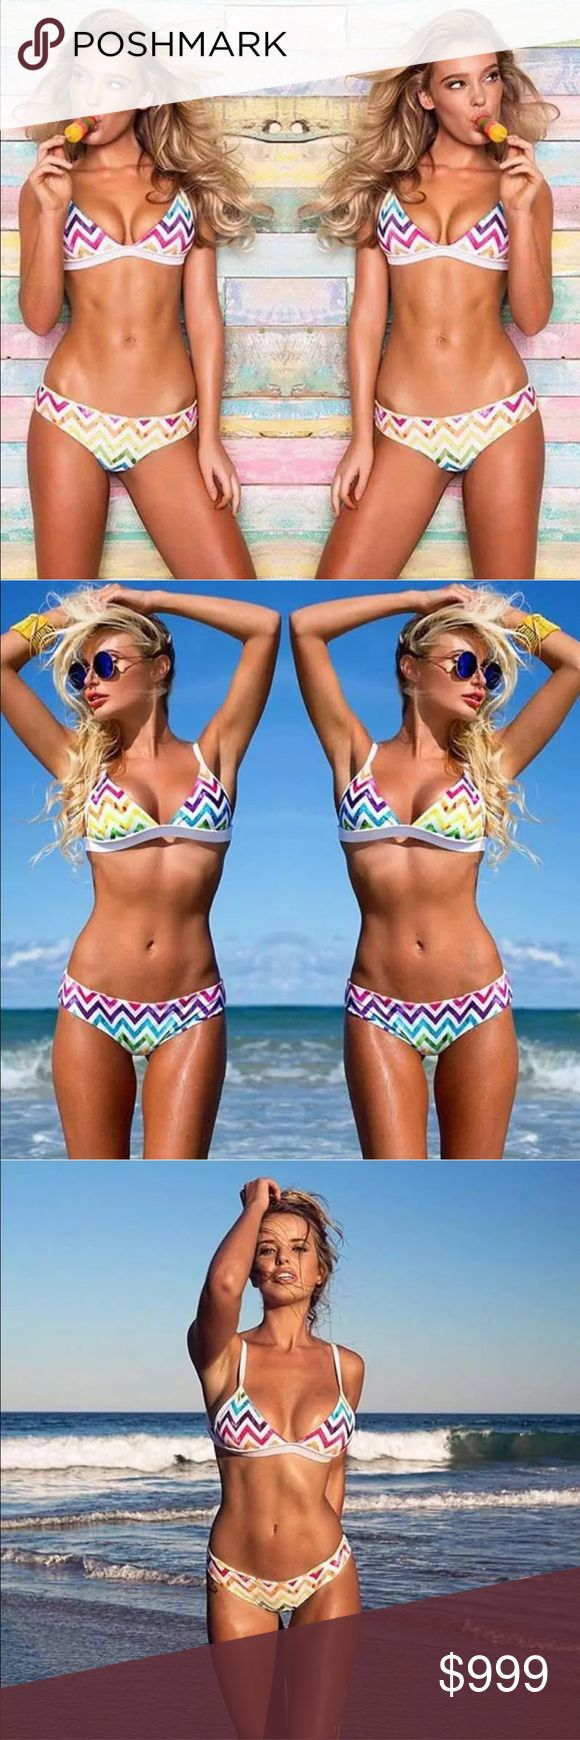 Preview! Rainbow Chevron Triangle Bikini  Preview! Rainbow Chevron Bandage Triangle Bikini  Like this listing and comment below to be notified upon arrival! Swim Bikinis